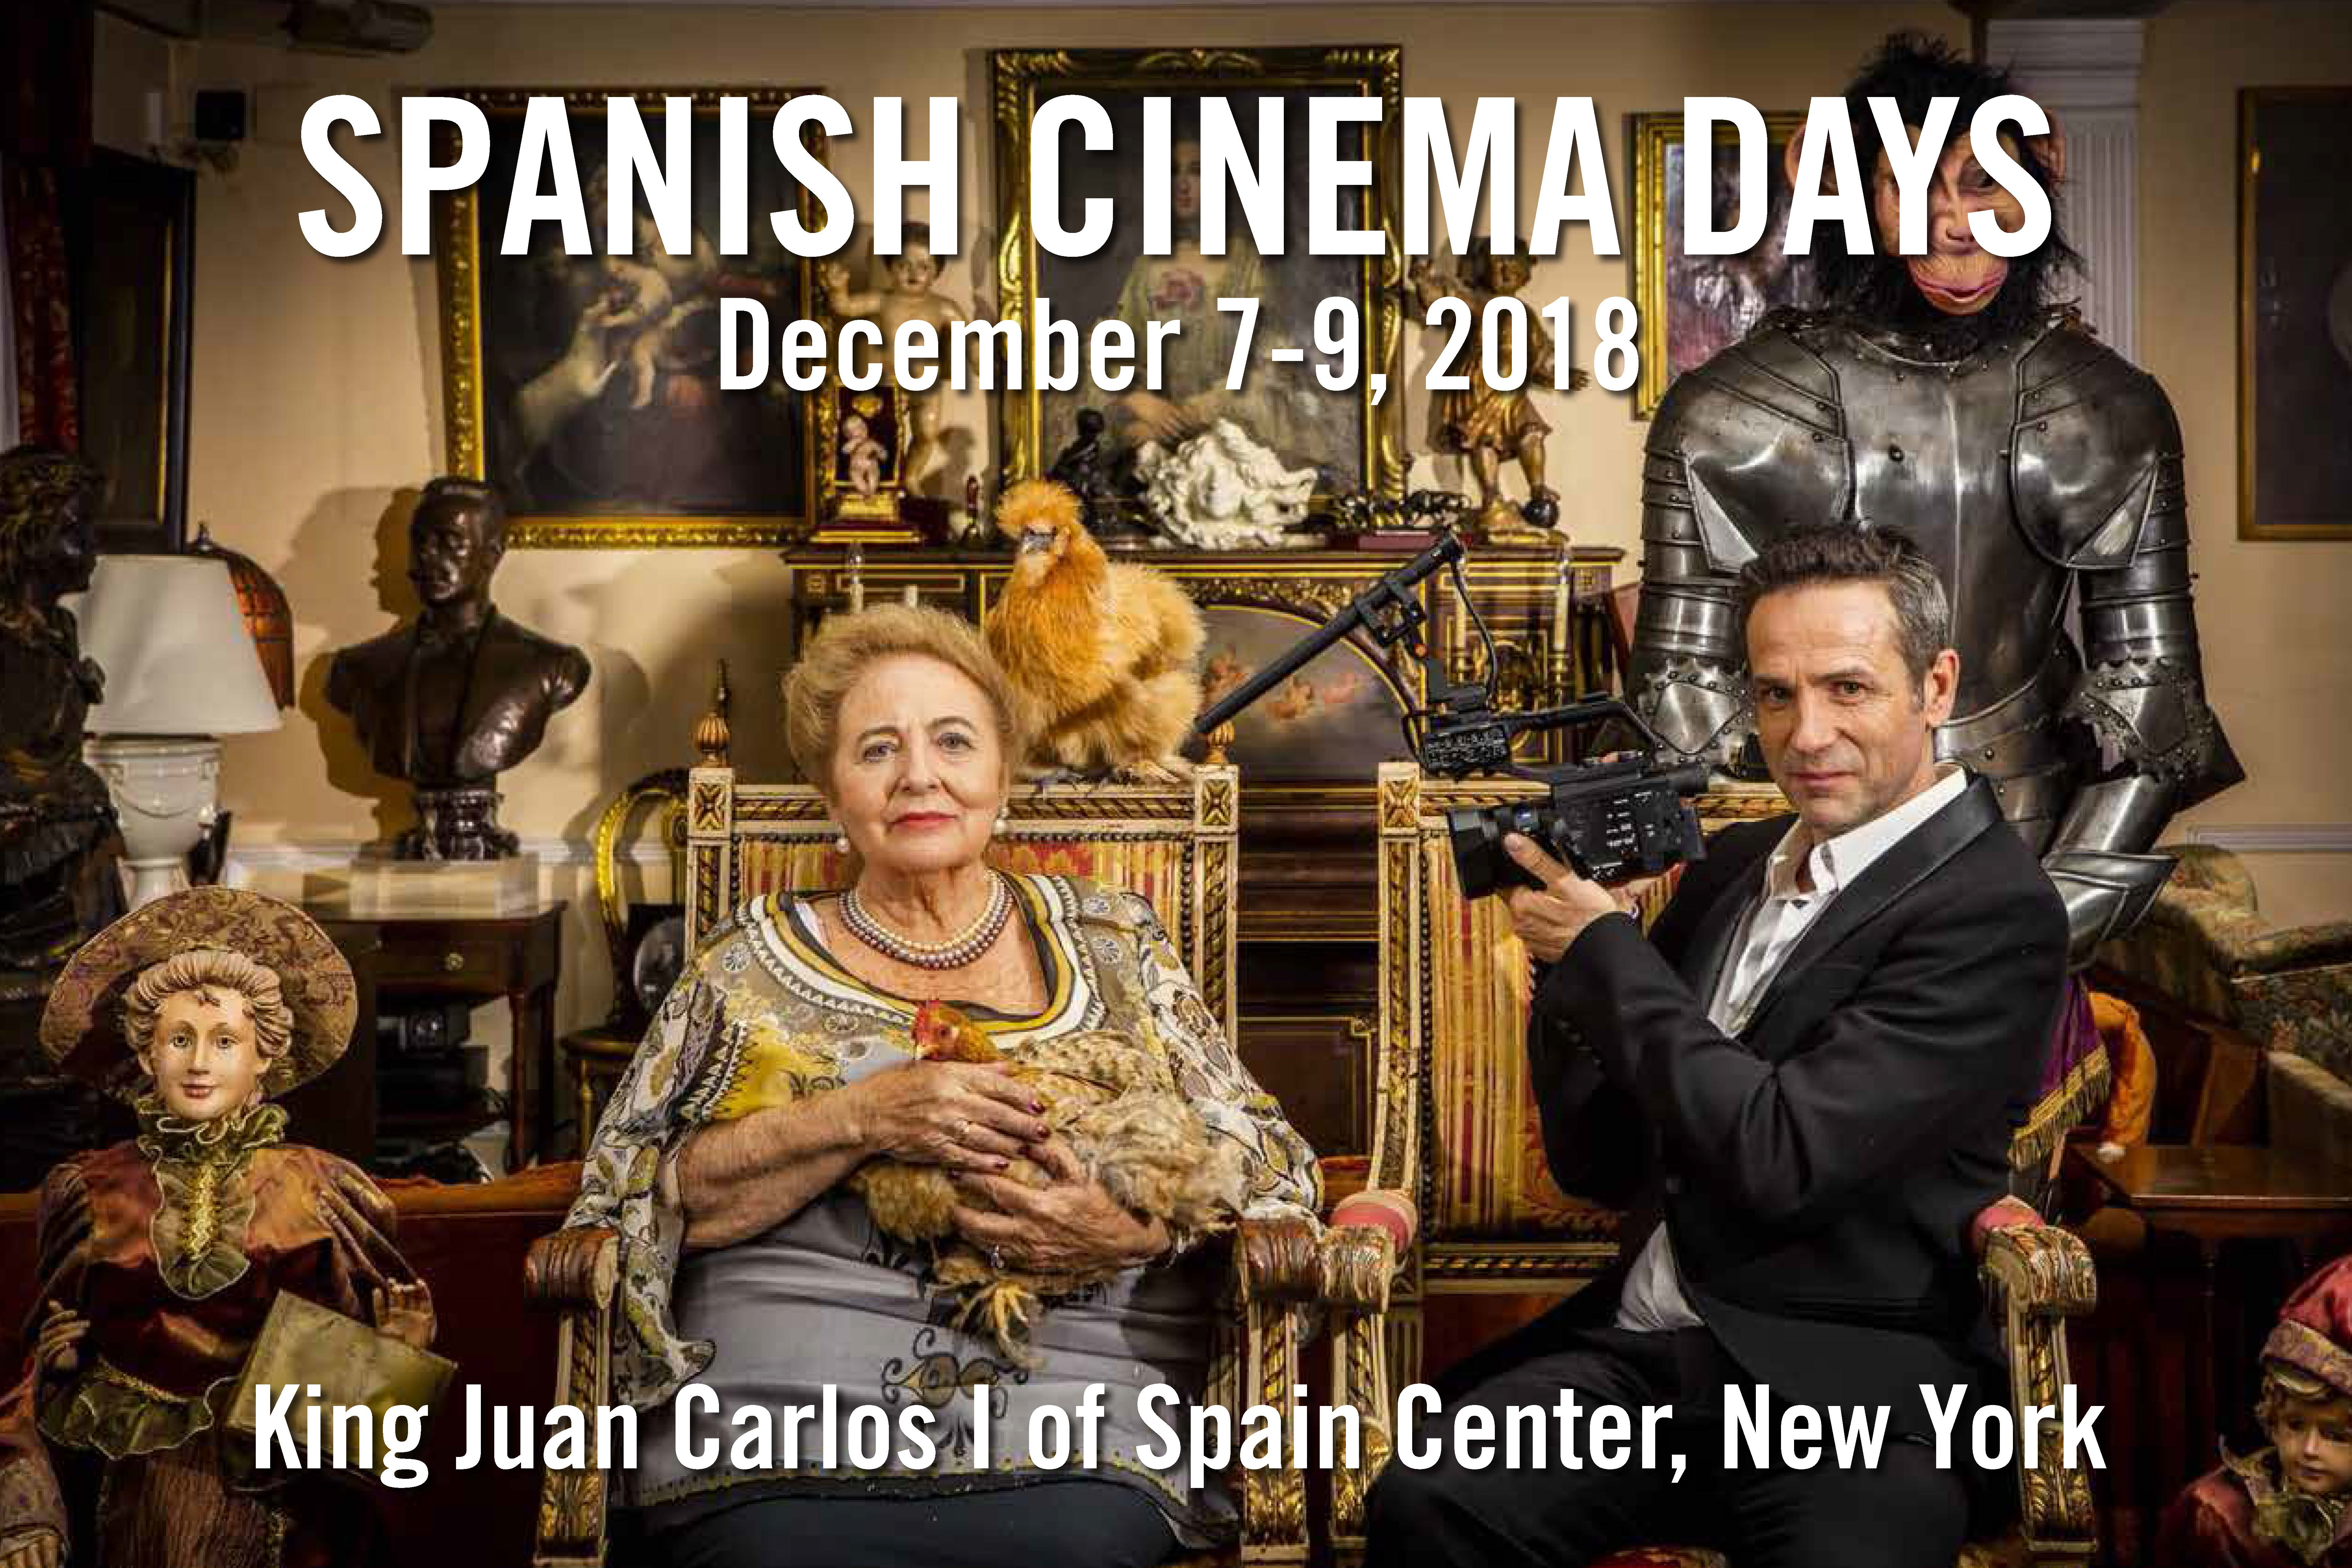 Spanish Cinema Days: Recent films from Spain (2016-2018)